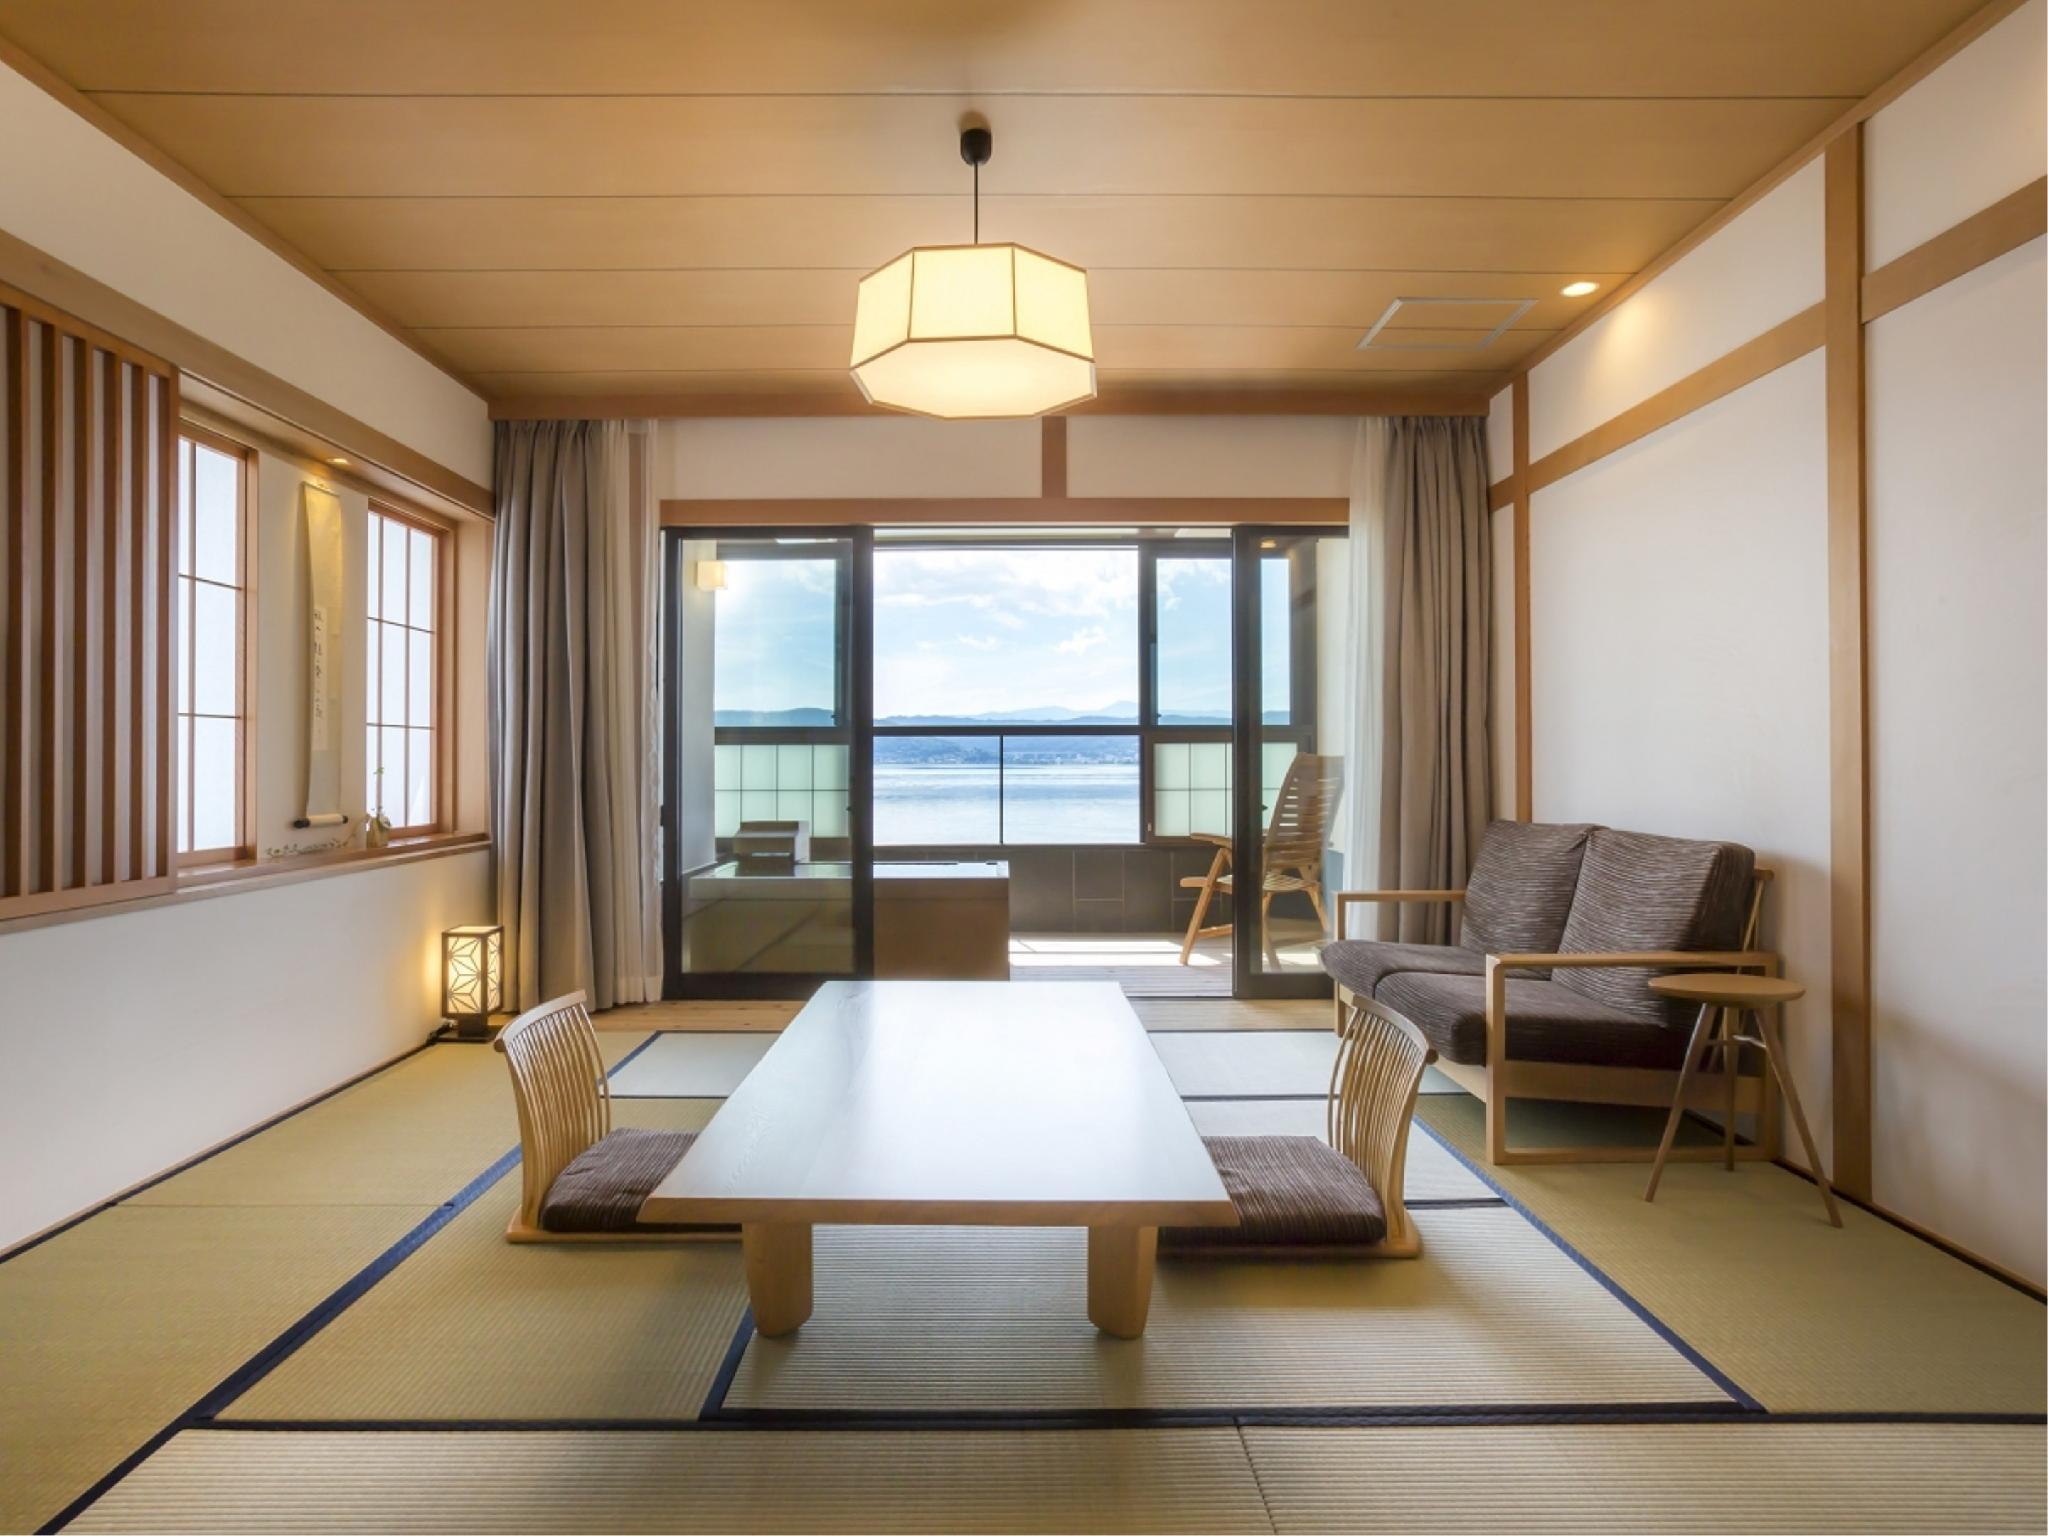 【岩梅】源泉露天風呂付客室 ワイドタイプ3階 301|75平米 (Wide Japanese/Western-style Room with Open-air Hot Spring Bath (Iwaume Type, No. 301))